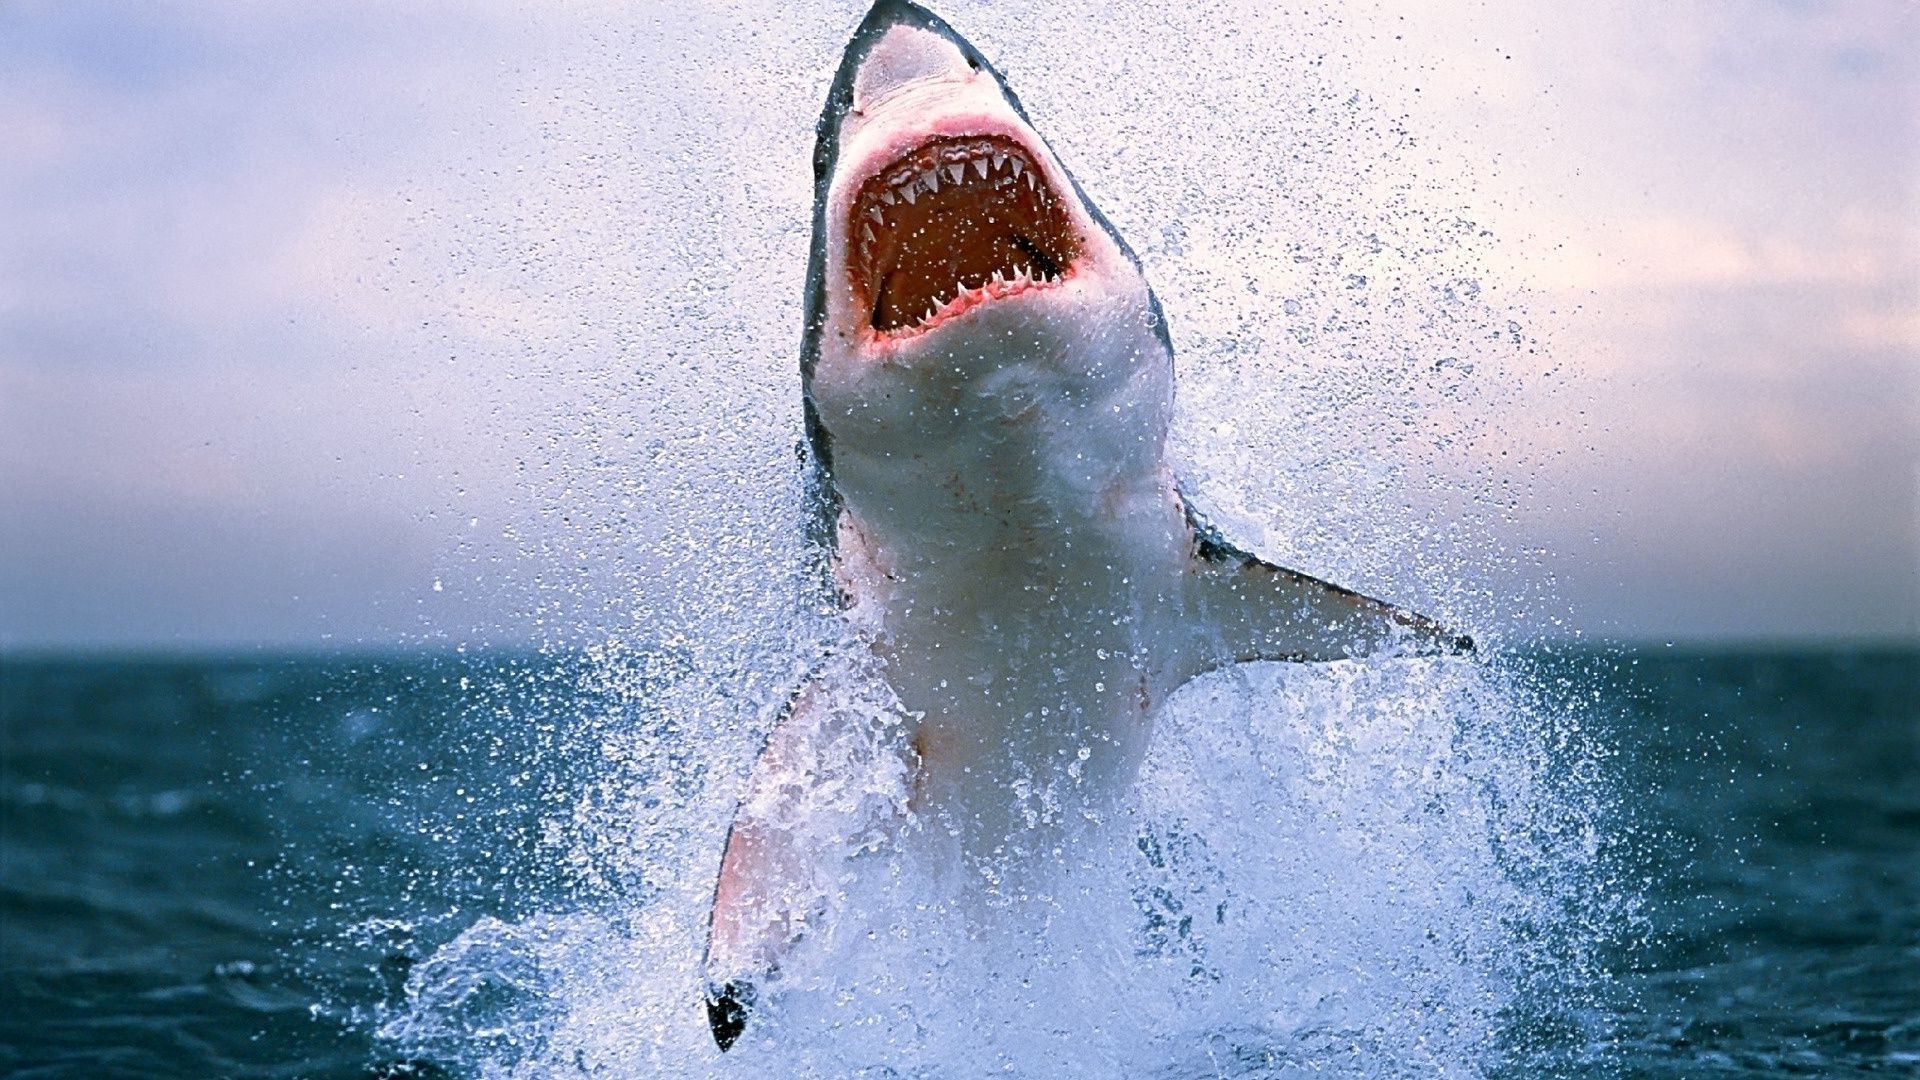 Sea shark - Android wallpapers